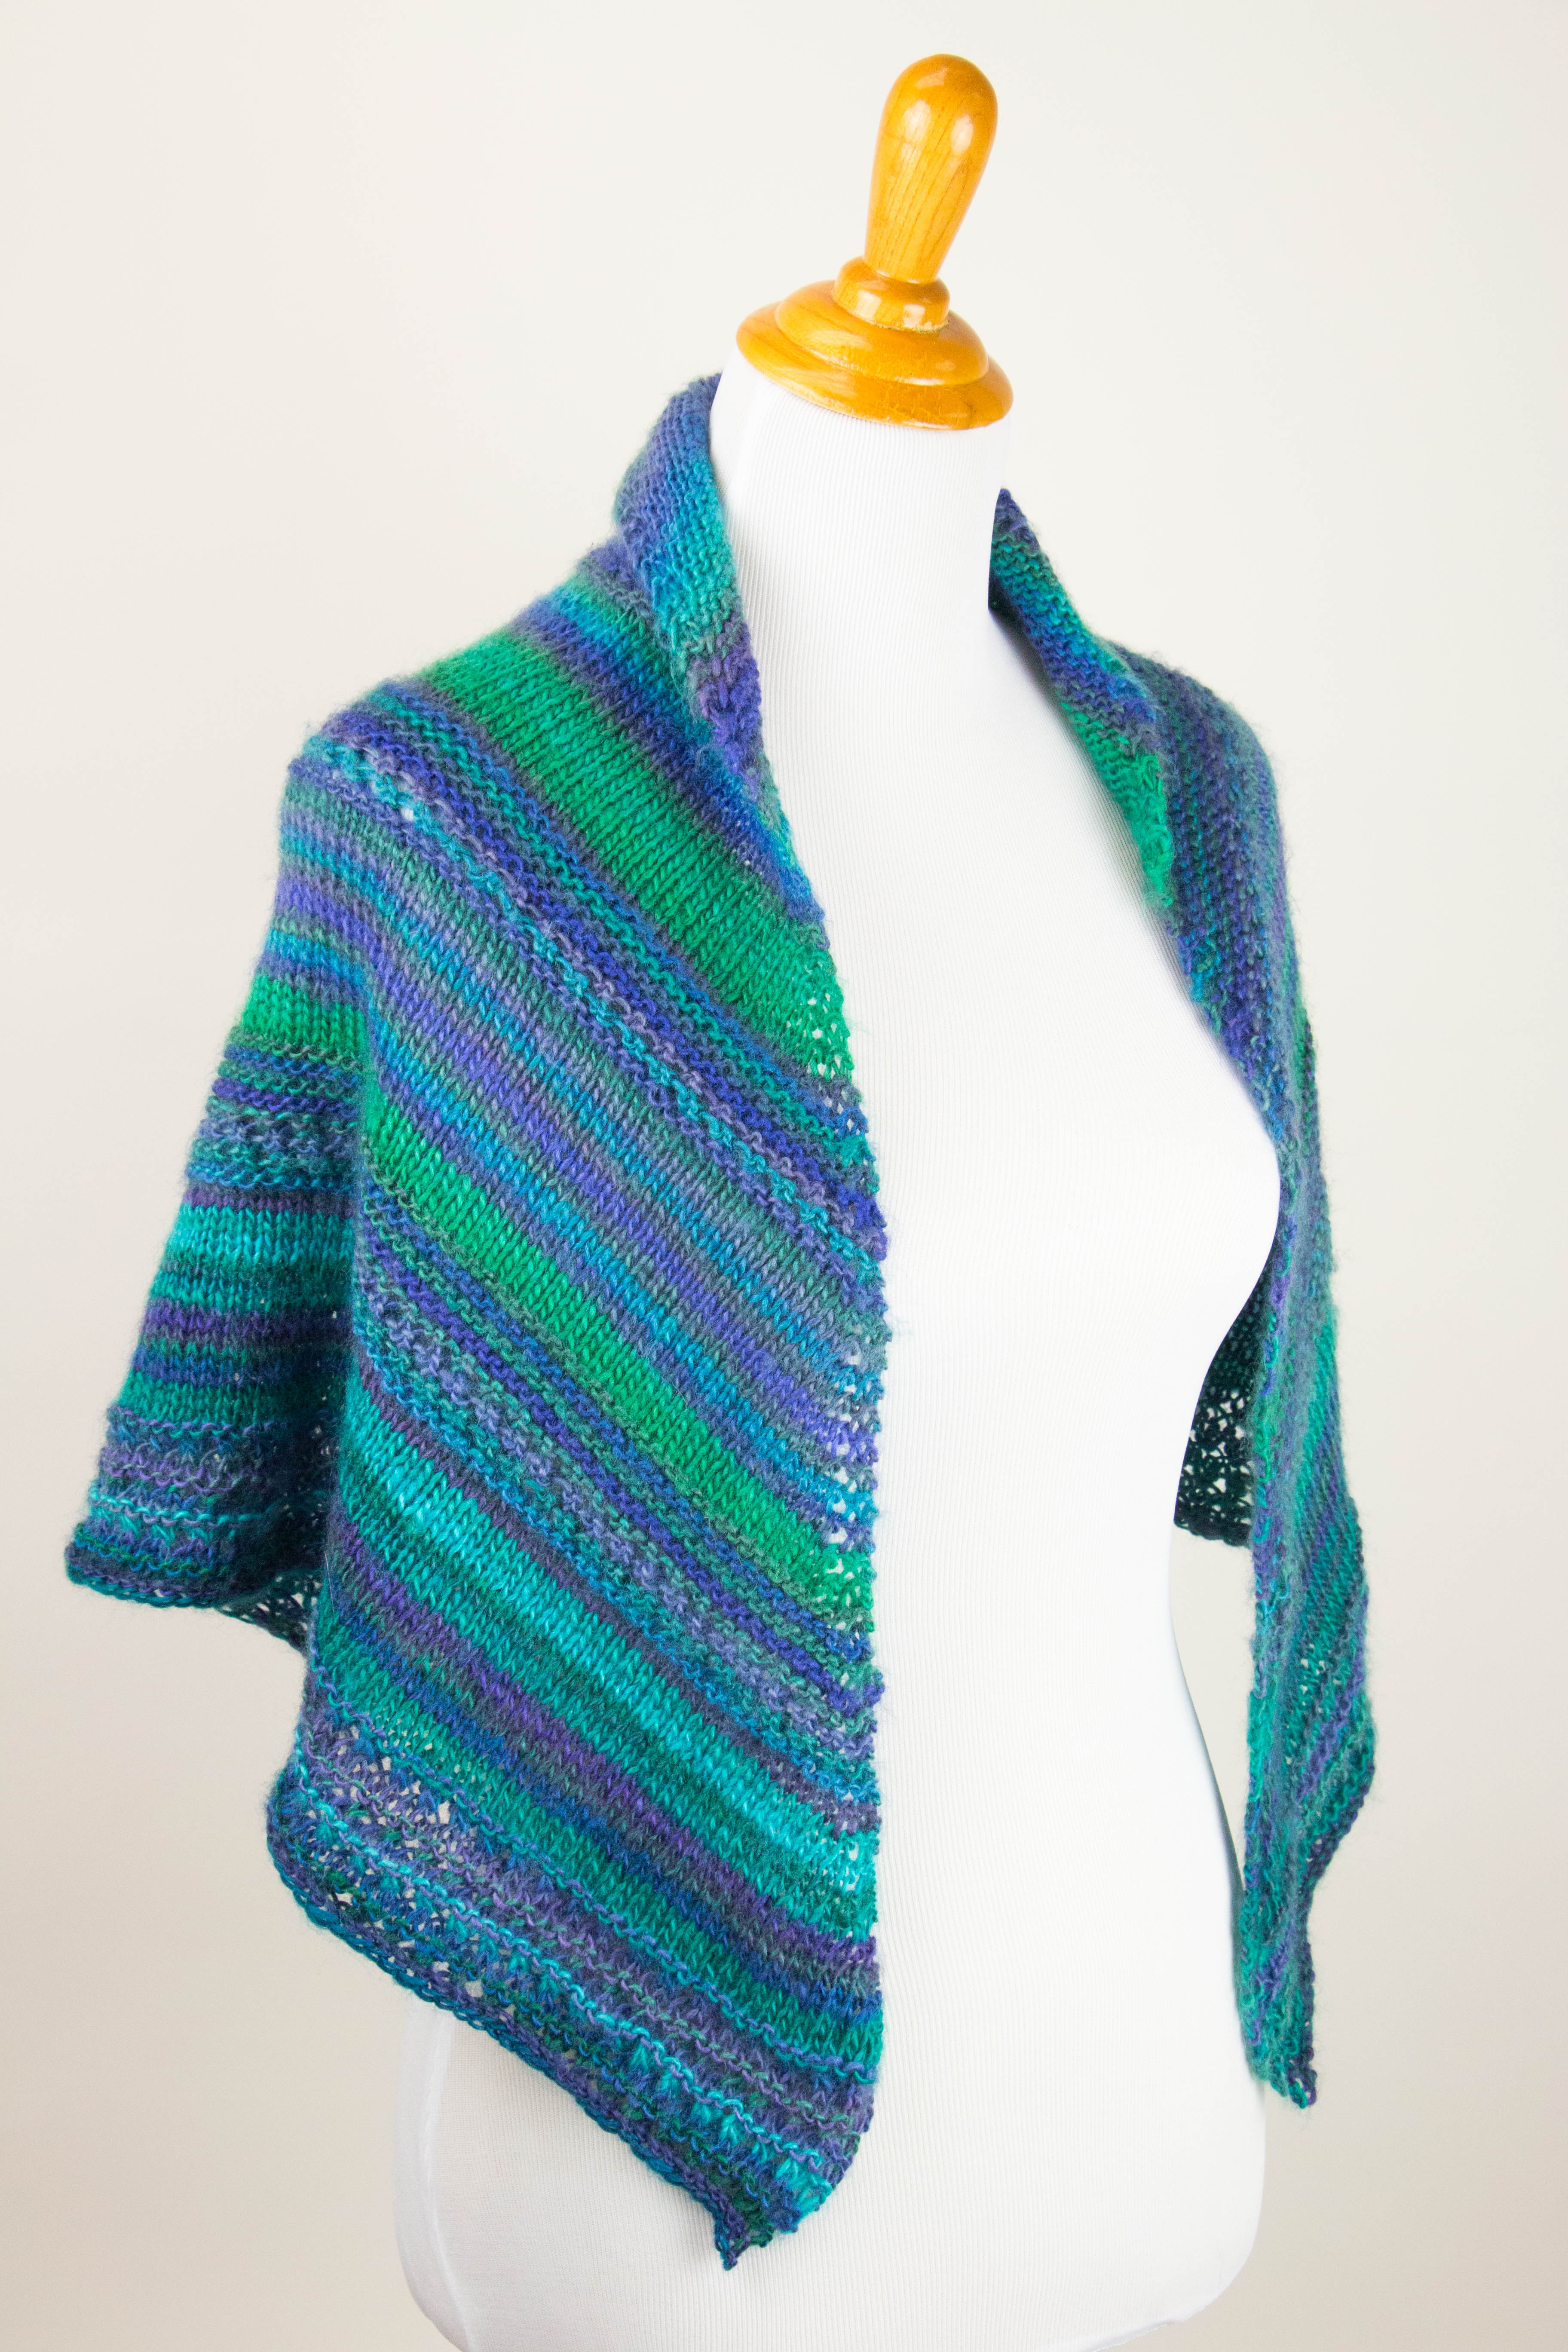 Free Crochet Patterns For A Prayer Shawl : Prayer Shawls for Rush Charity Drive - Stitch and Unwind